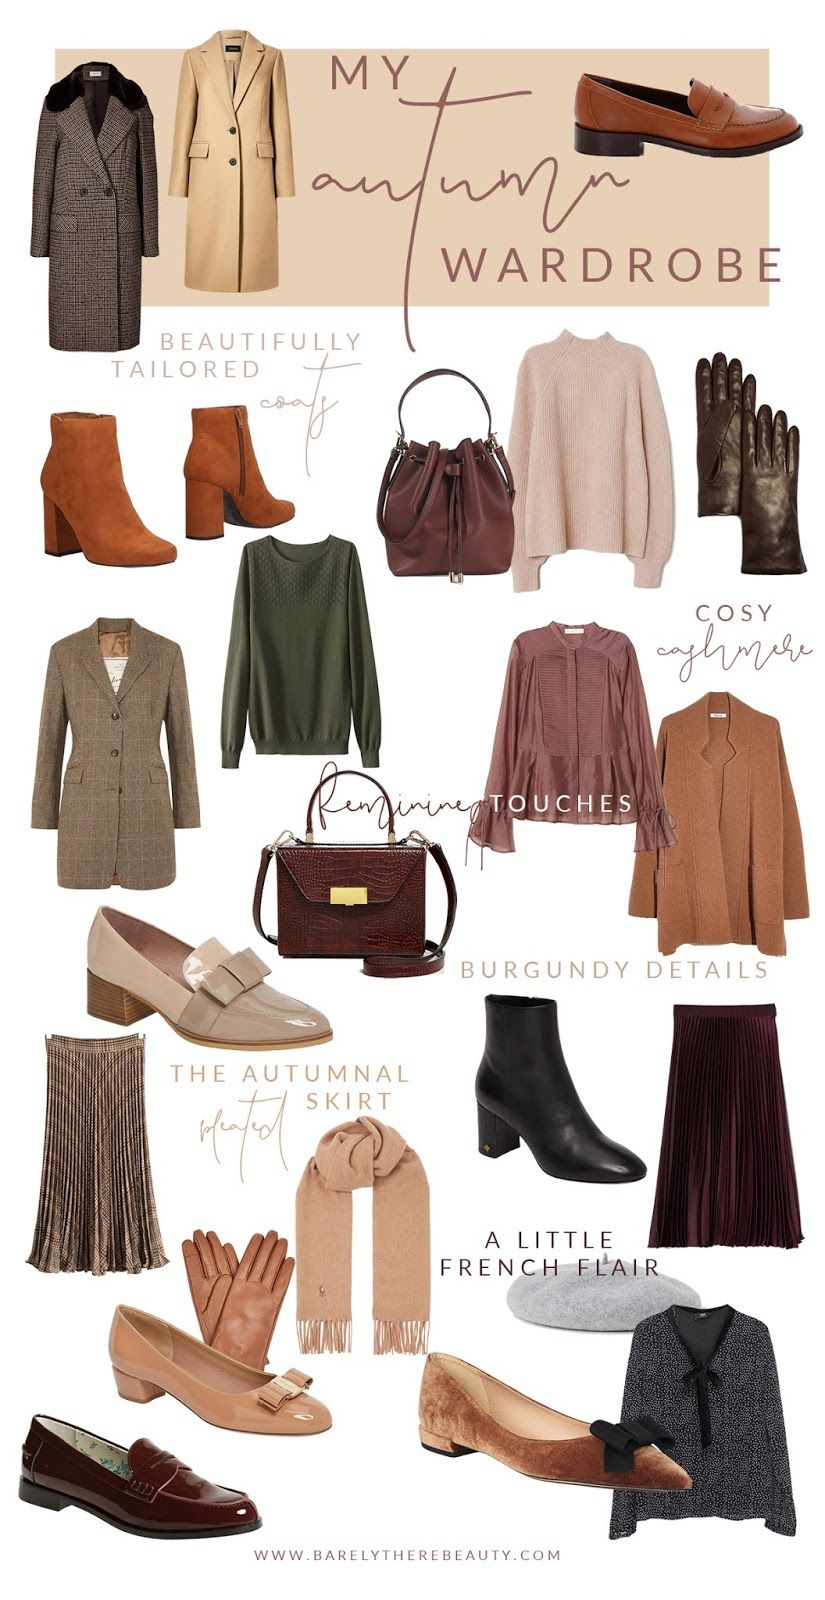 MY AUTUMN WARDROBE. in 2020 | Autumn fashion, Fashion ...